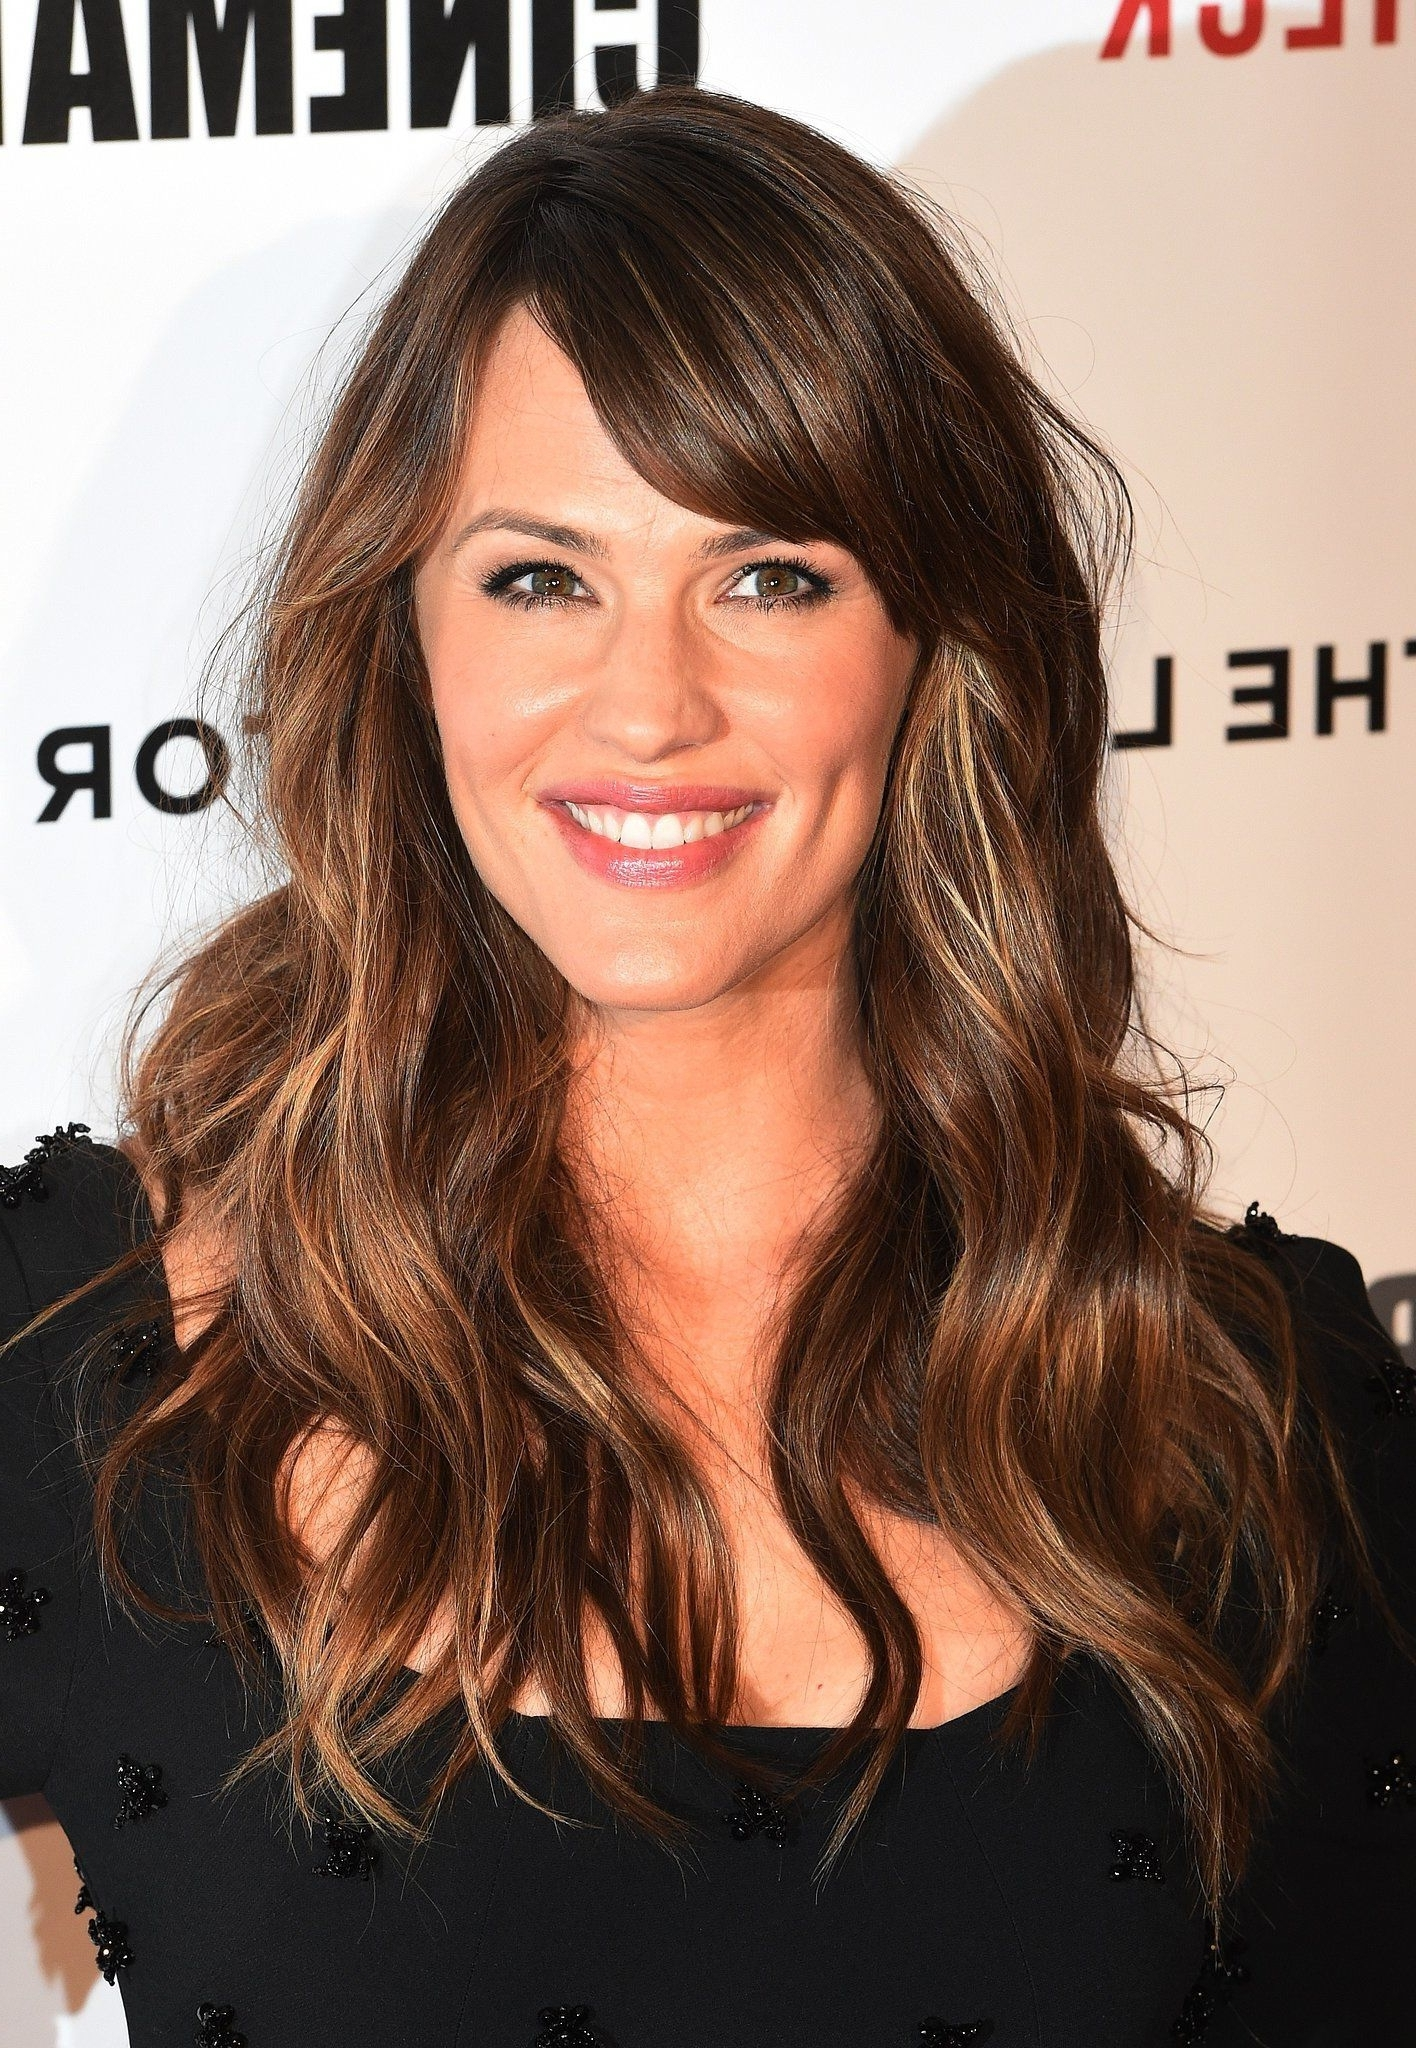 Popular Cropped Tousled Waves And Side Bangs Hairstyles Inside Jennifer Garner (View 18 of 20)